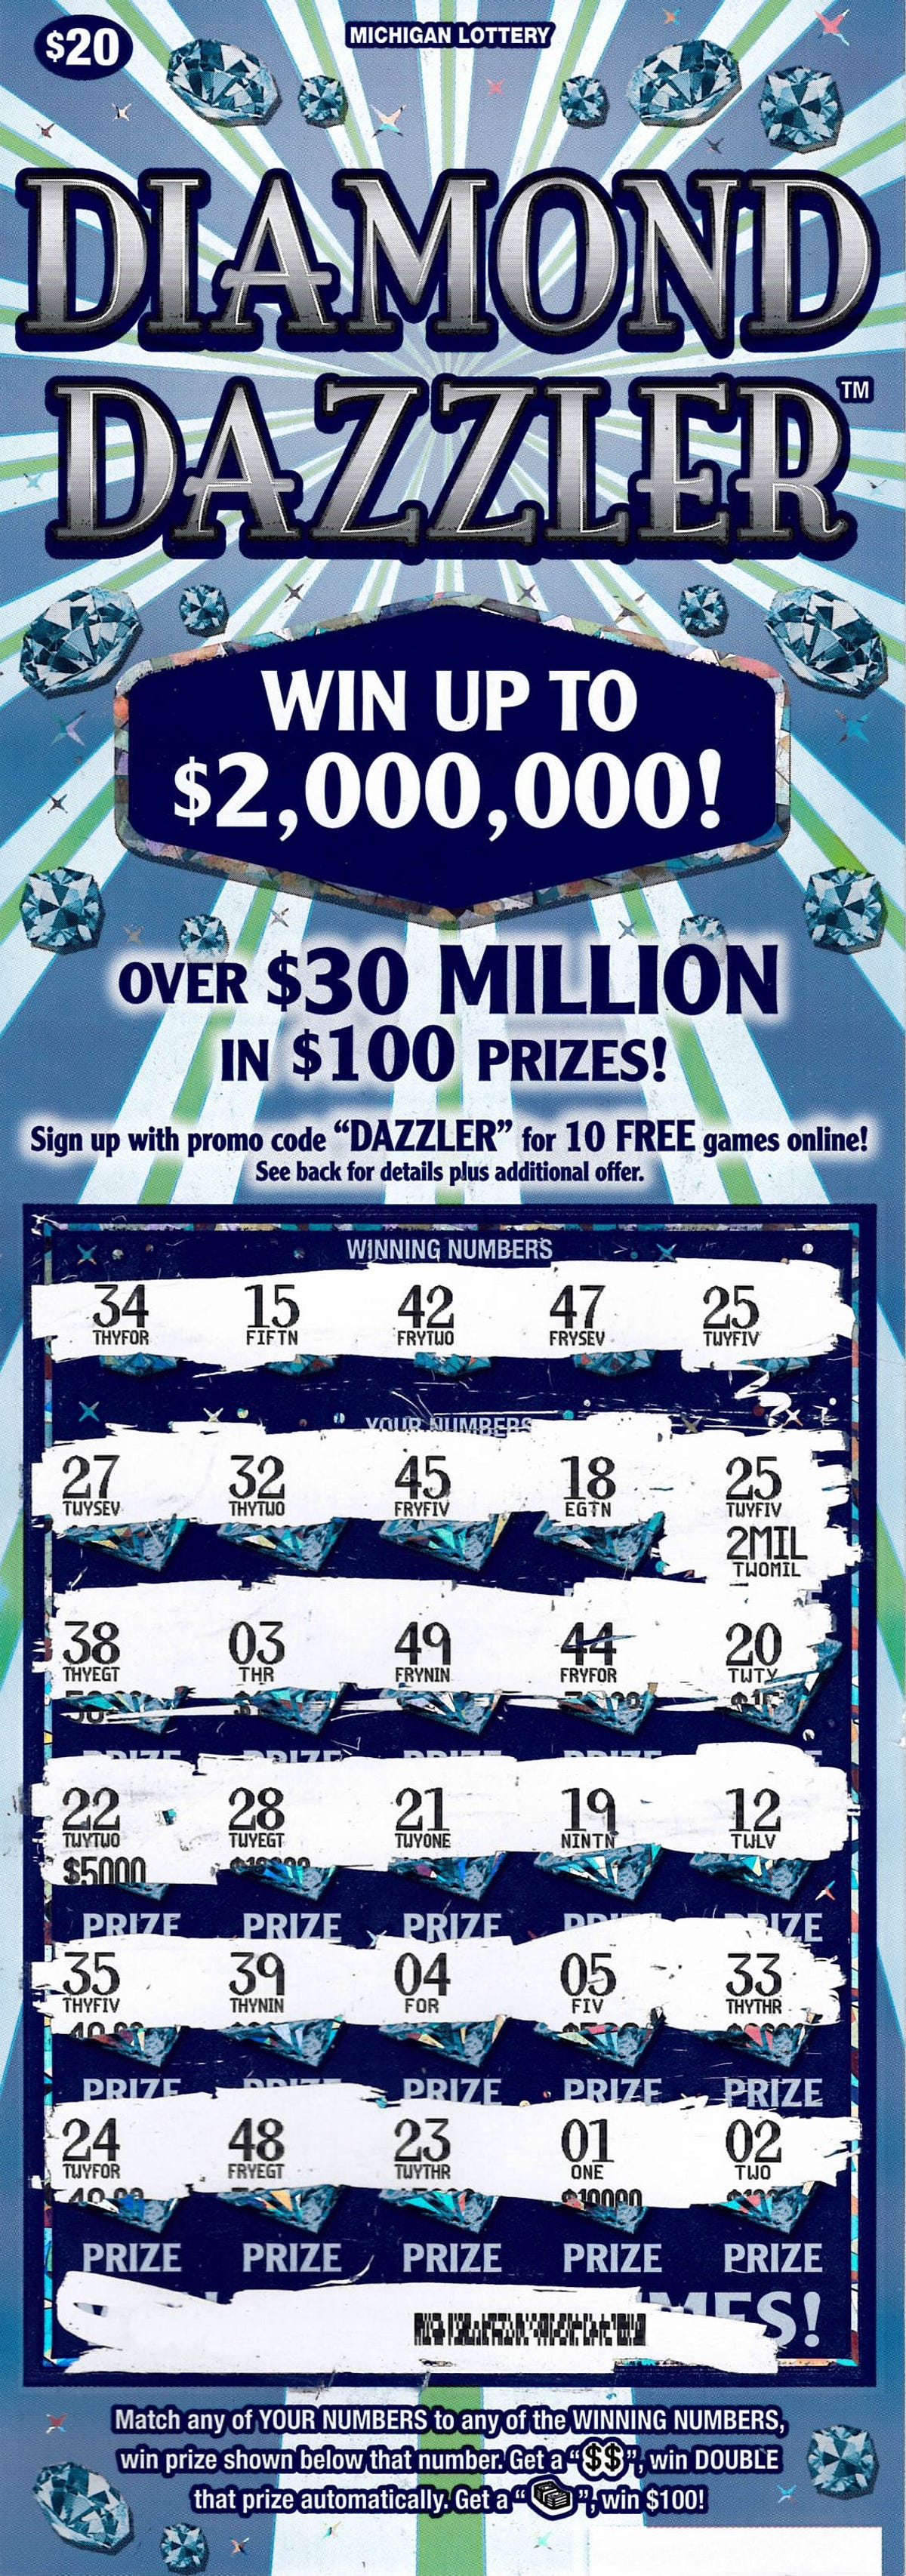 Michigan Lottery: Wayne County man wins $2M on instant ticket